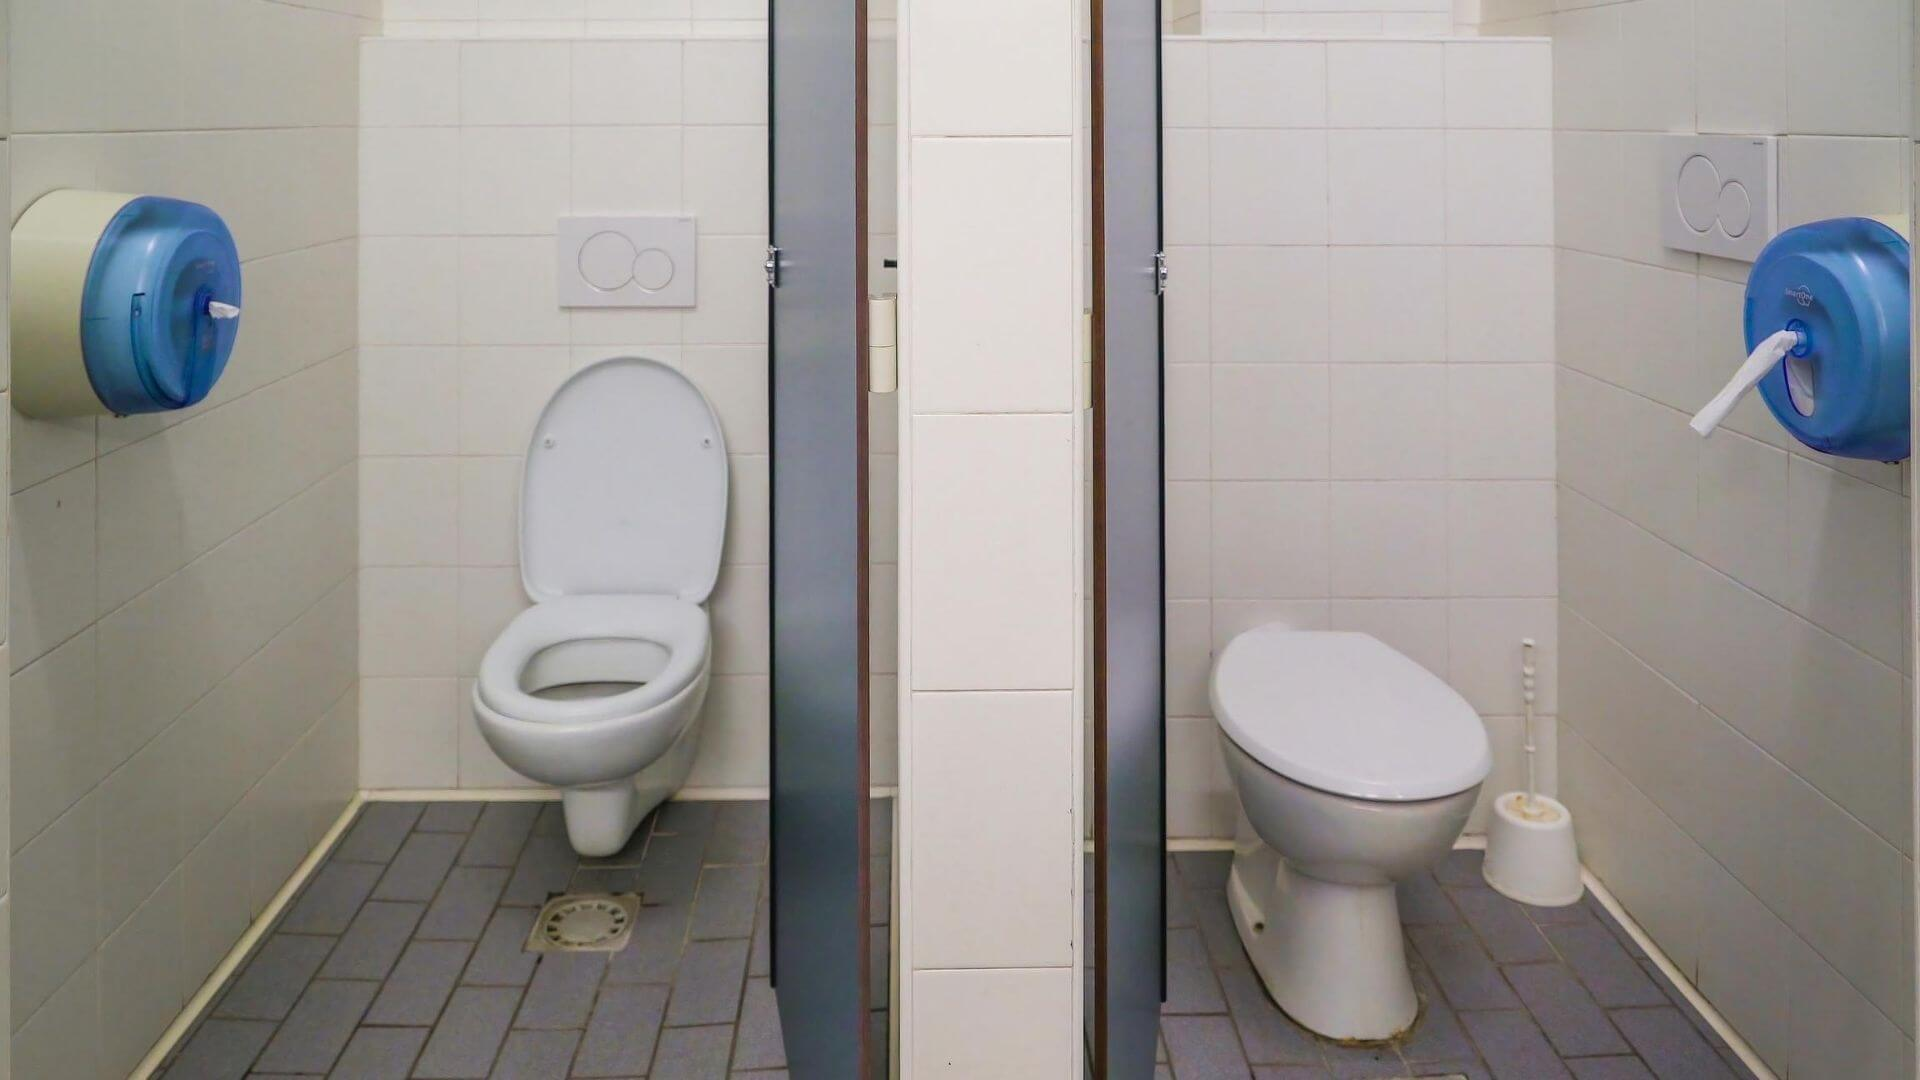 Can Two Toilets Share the Same Drain